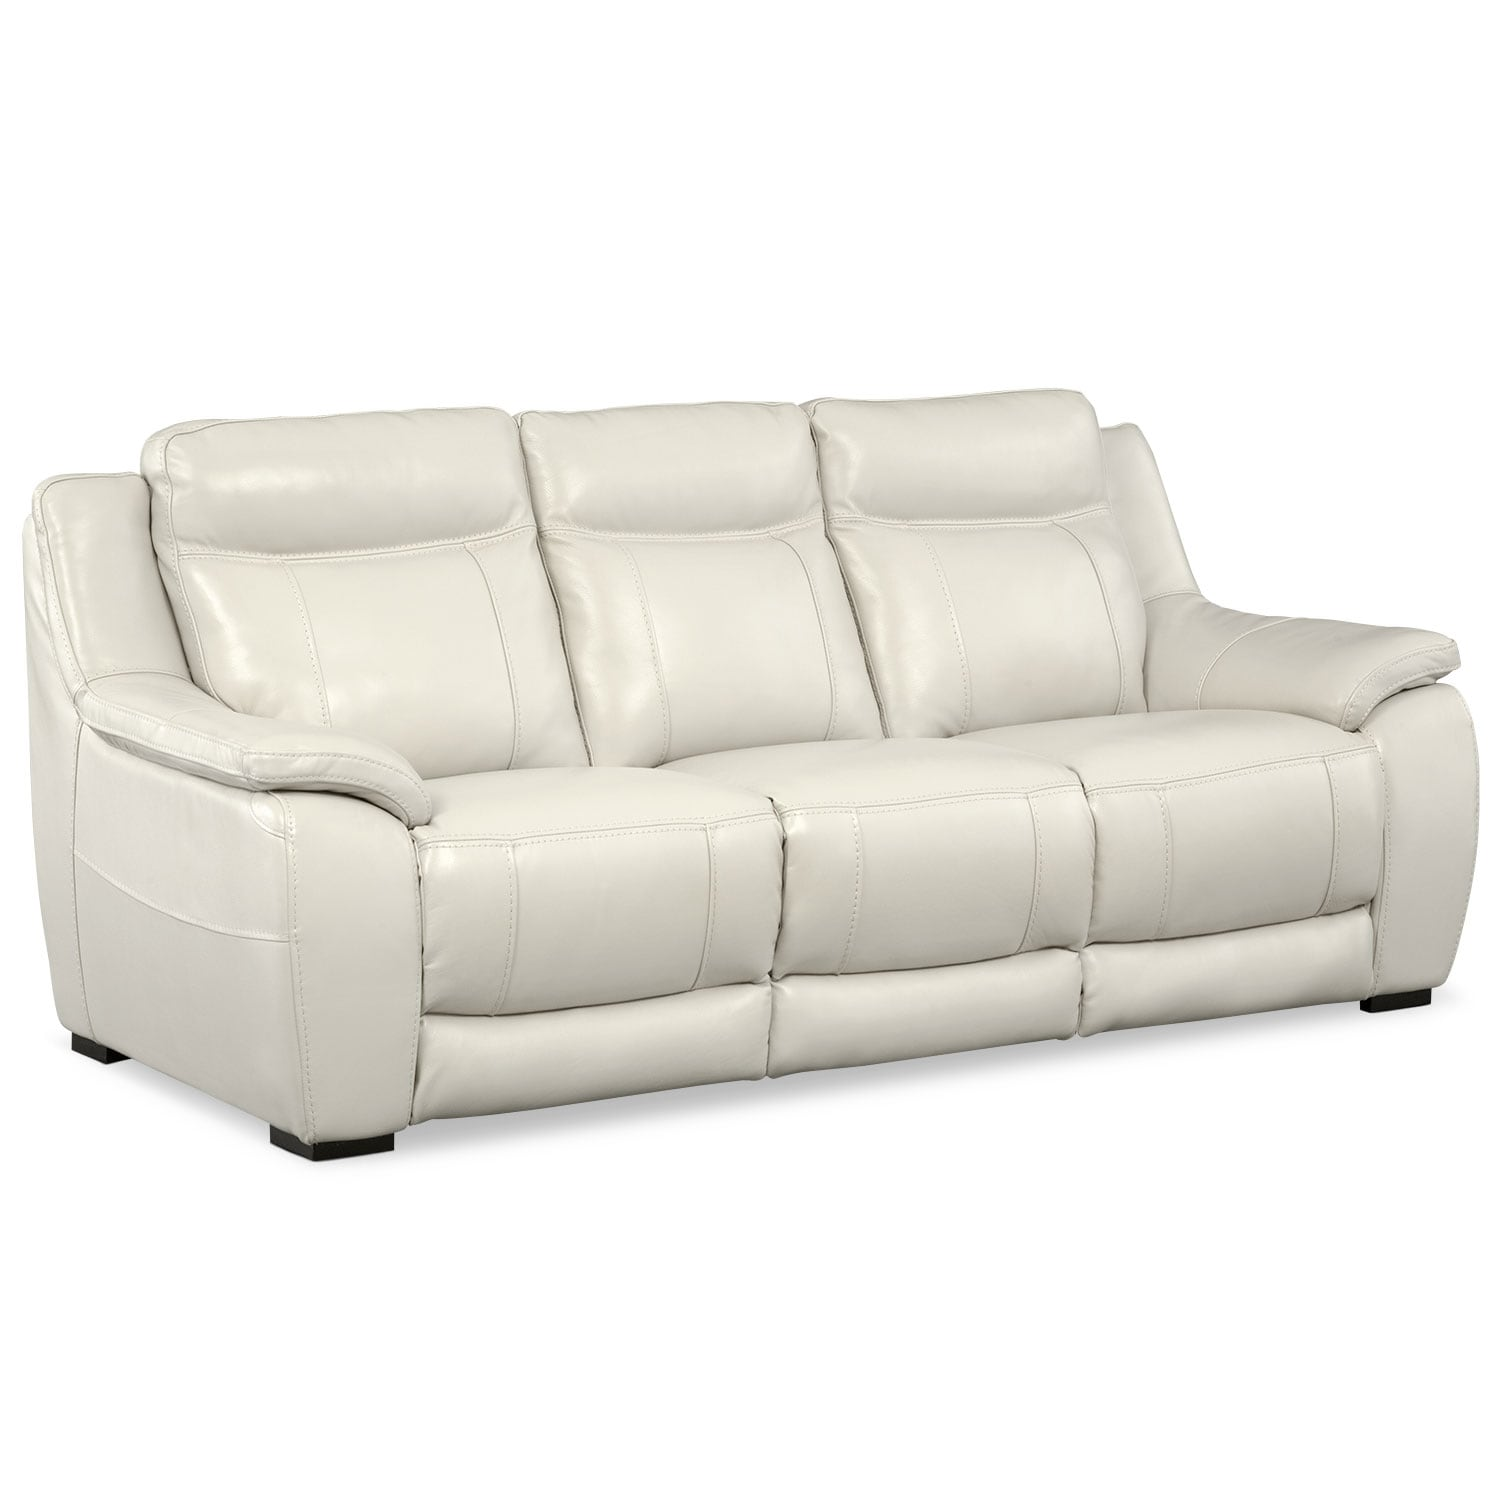 Living Room Furniture - Lido Ivory Sofa